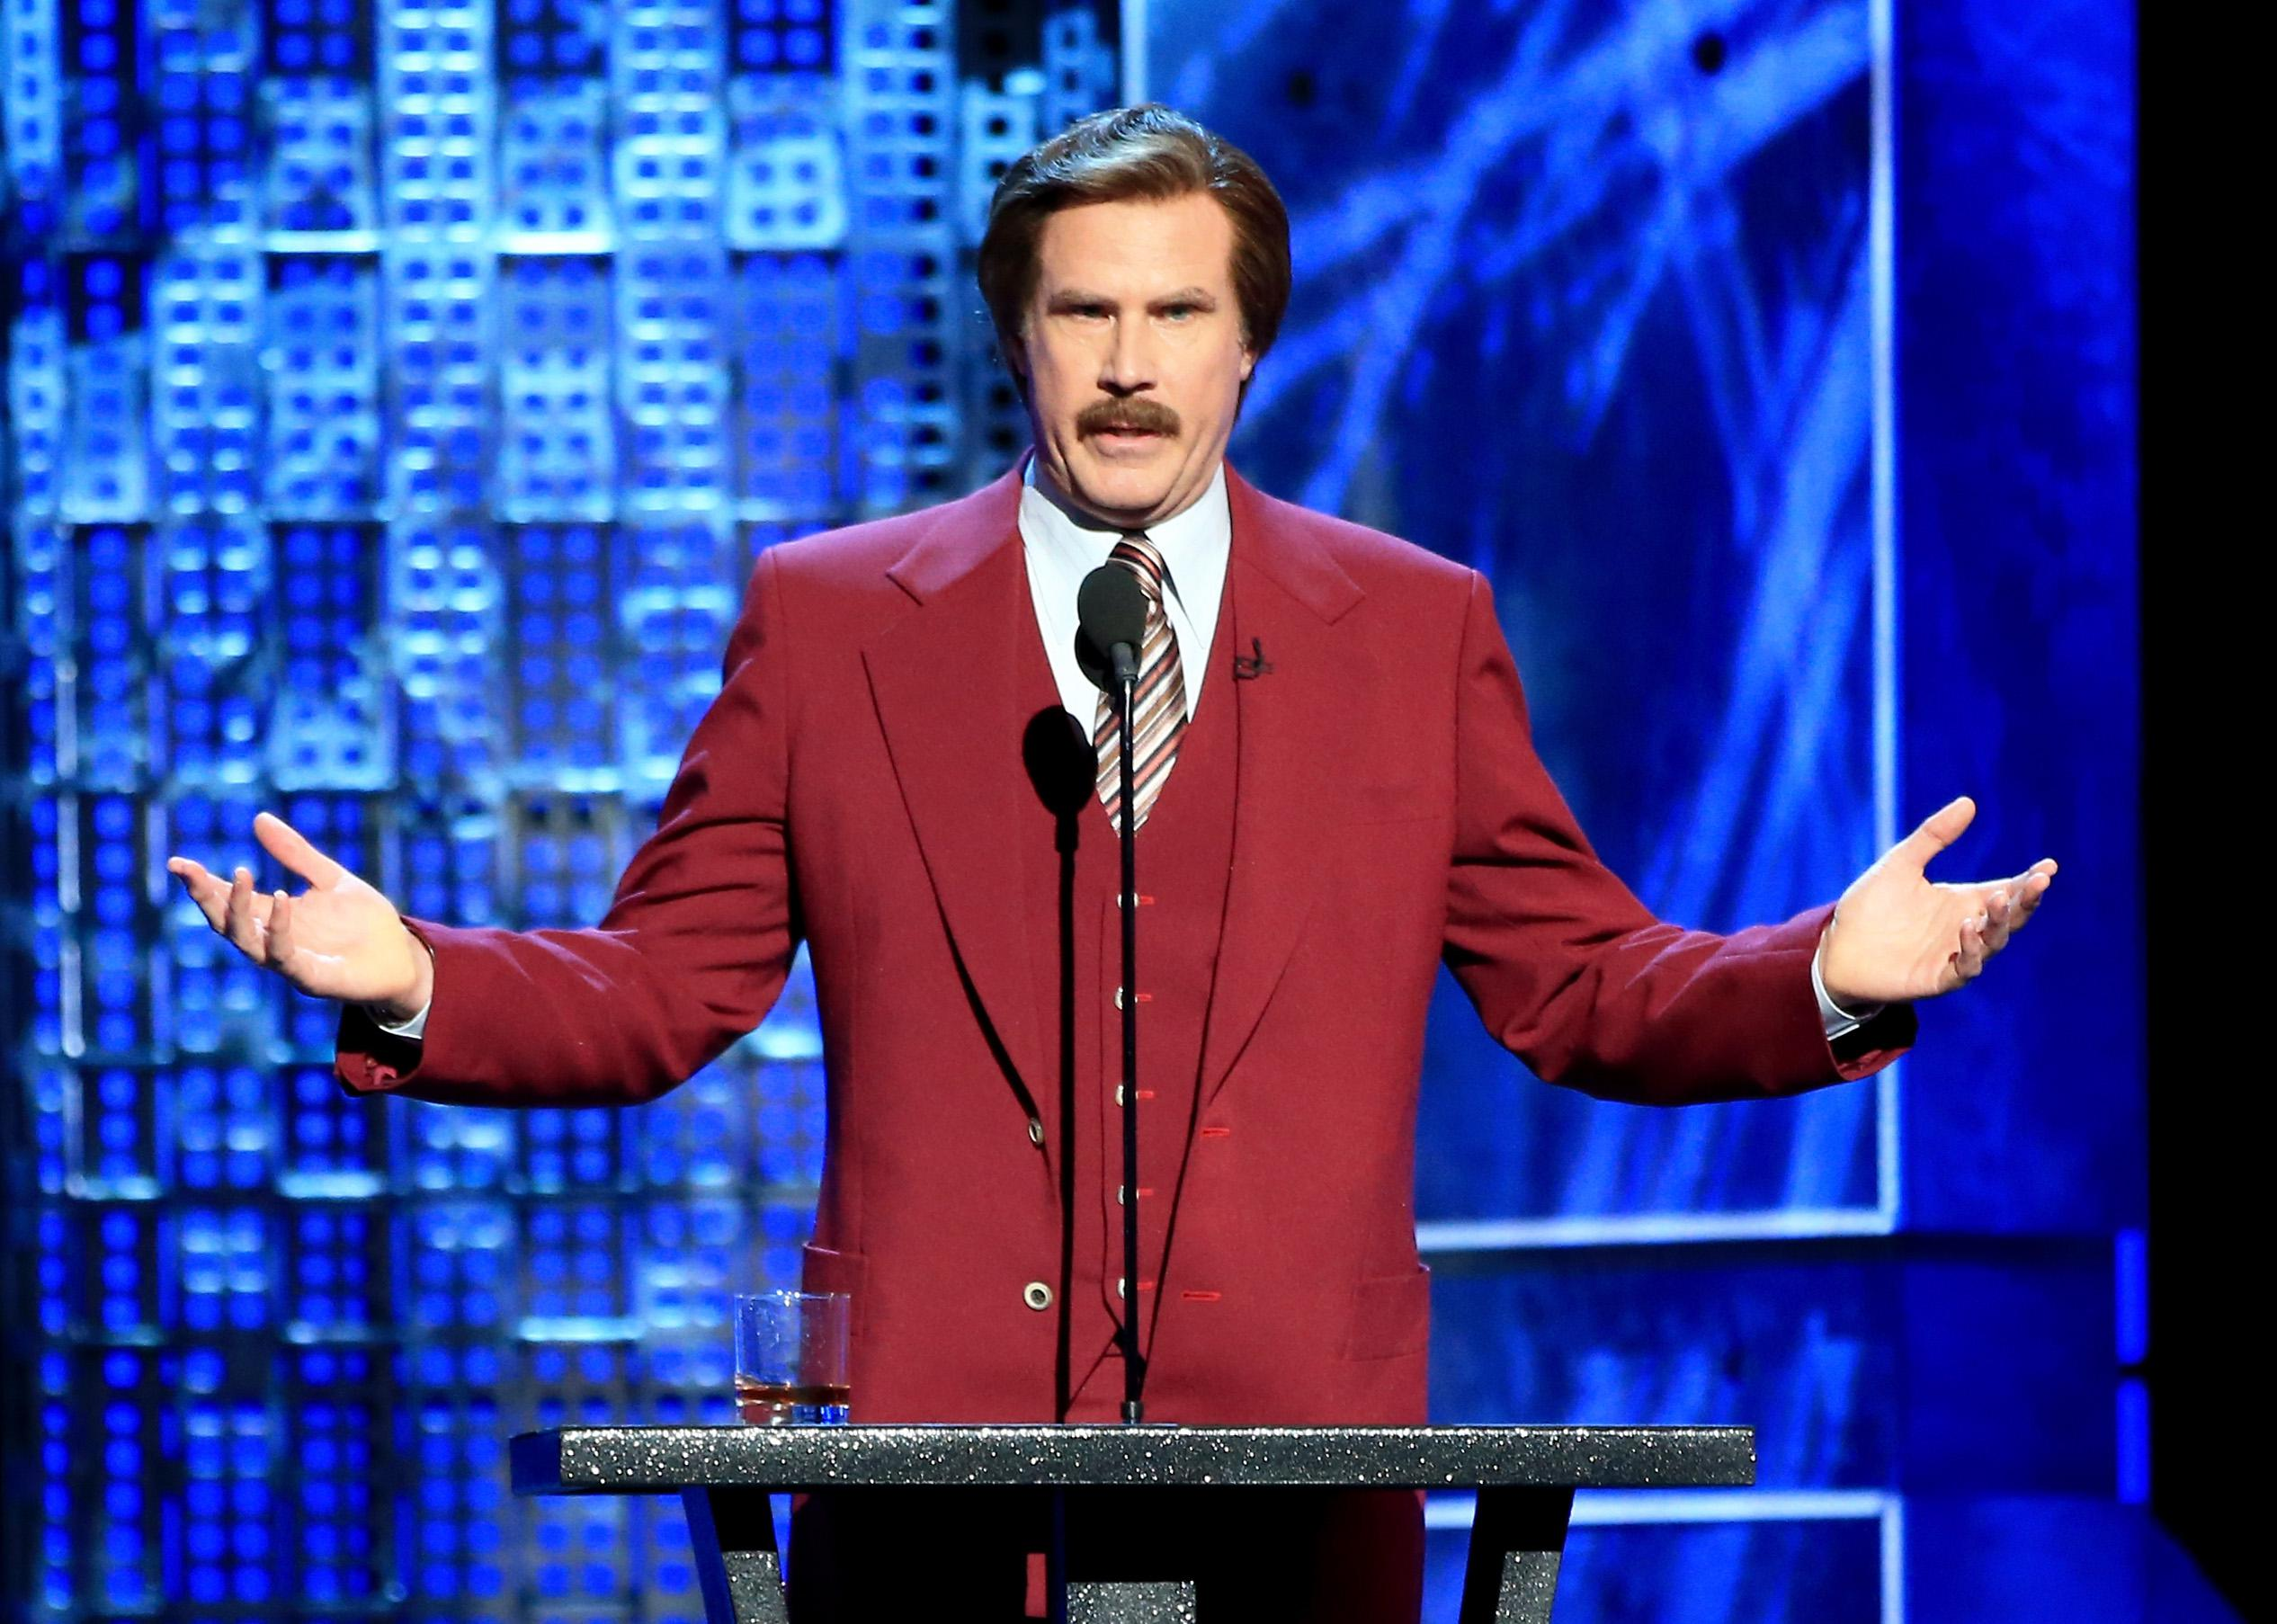 Will Ferrell stands at a podium, arms raised, wearing his Ron Burgundy red suit and mustache.